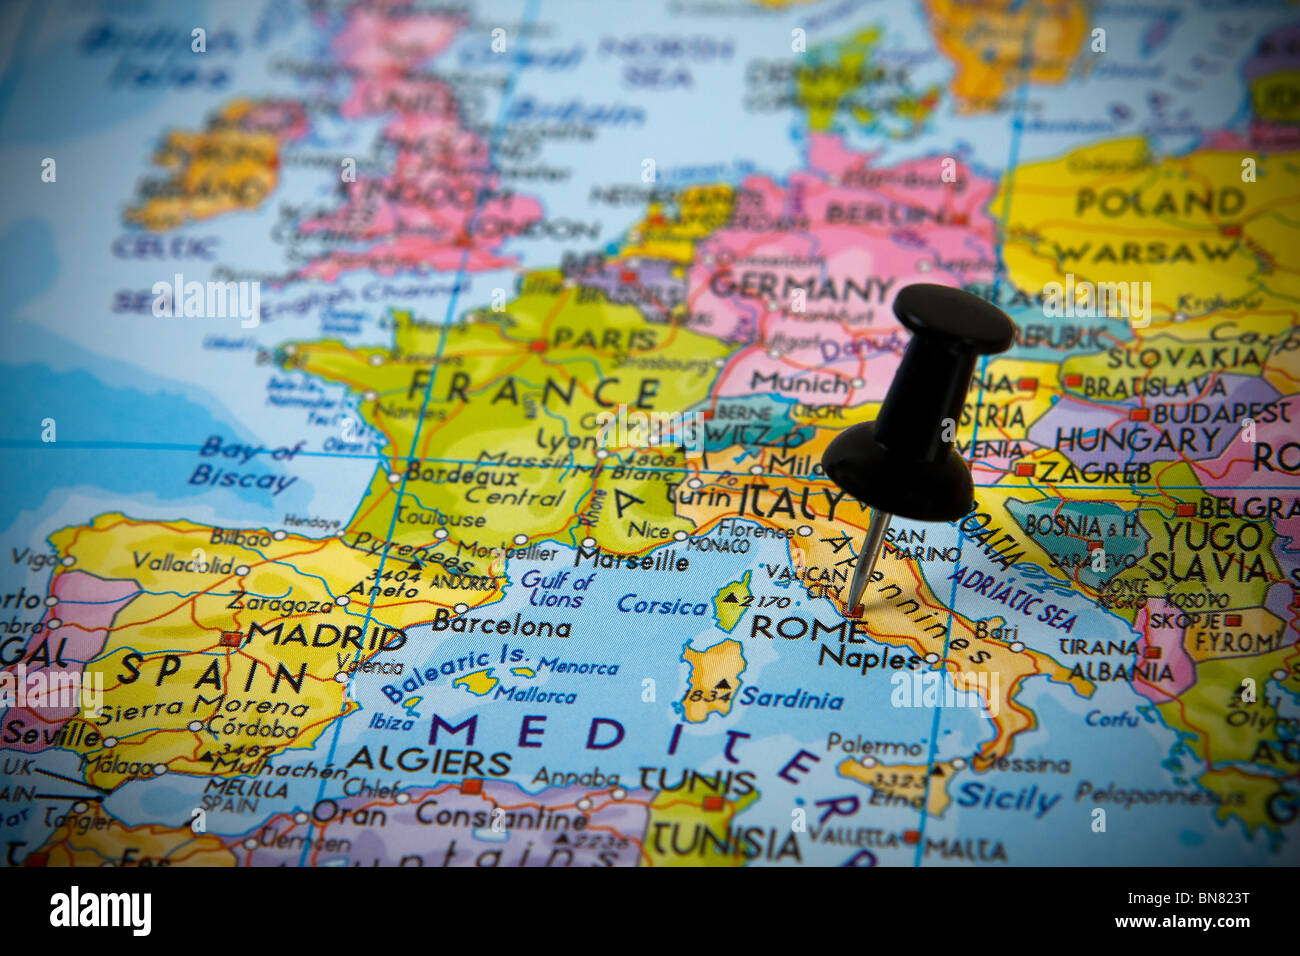 Small pin pointing on Rome (Italy) in a map of Europe Stock Photo